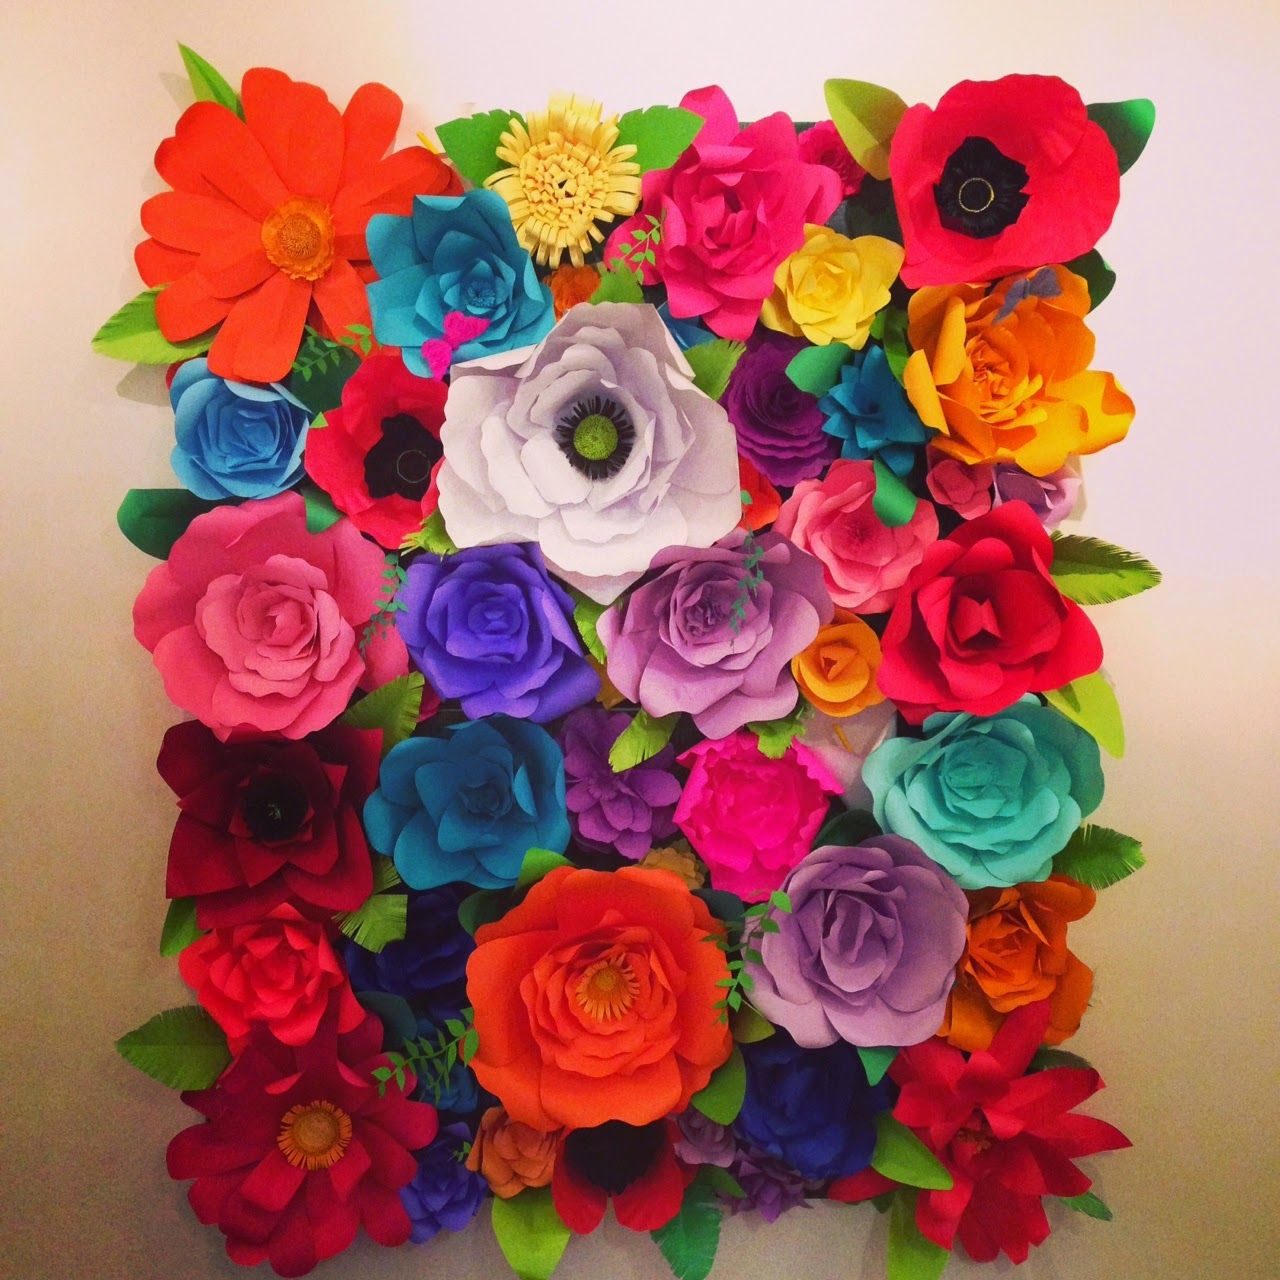 Cute flower backdrop for a fiesta photo shoot or event mexican cute flower backdrop for a fiesta photo shoot or event mightylinksfo